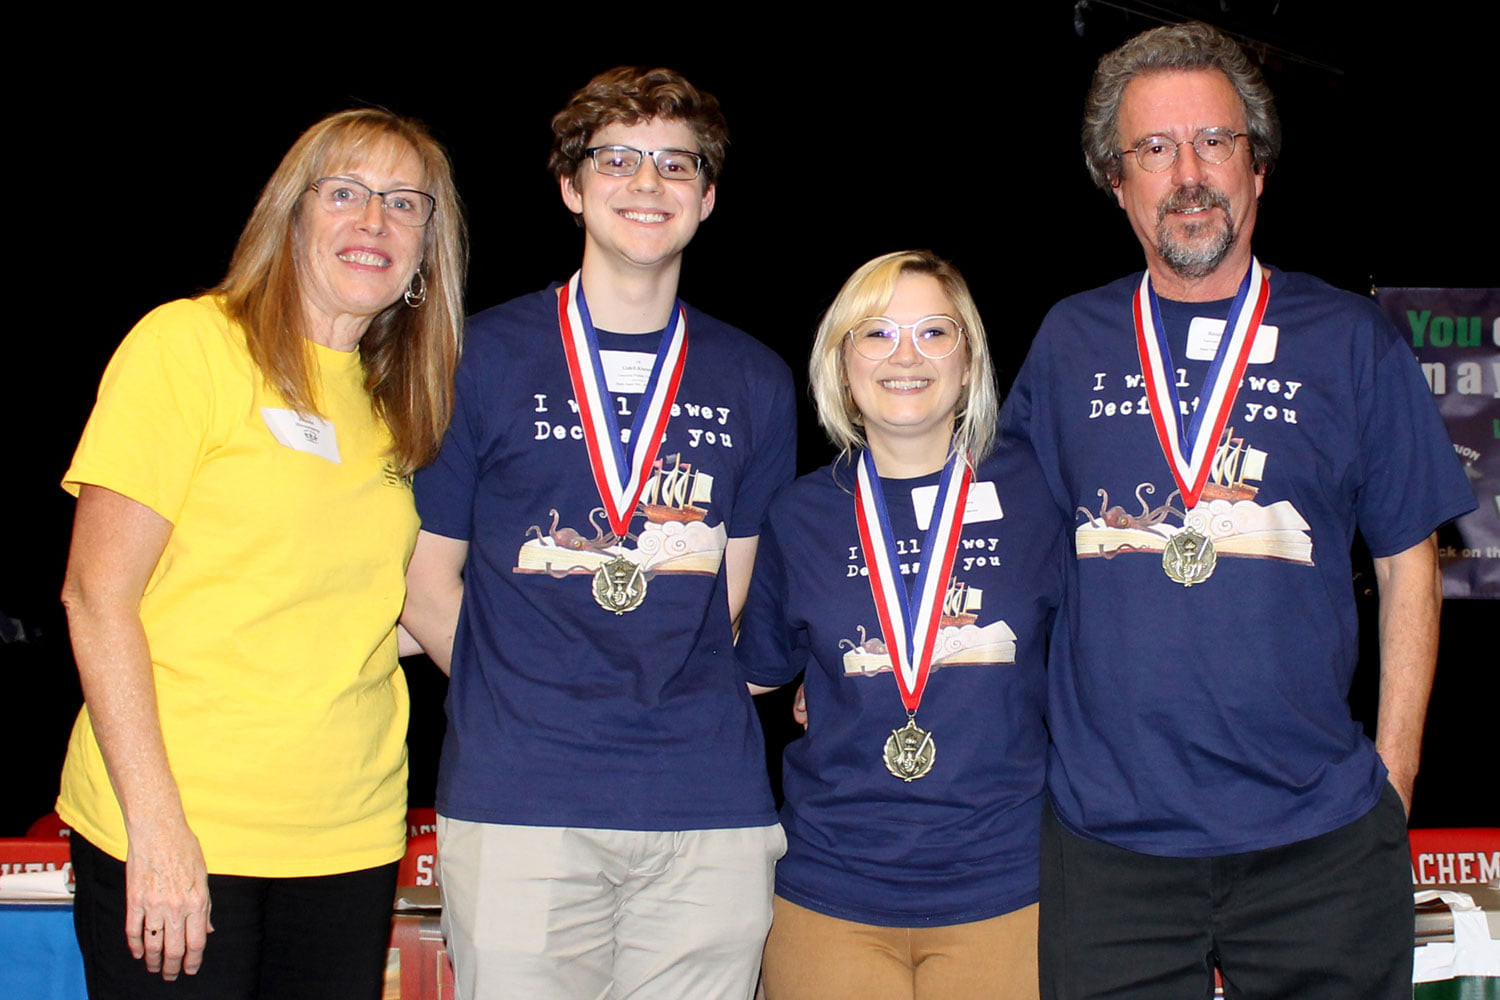 2019 Spelling Bee 1st Place Team